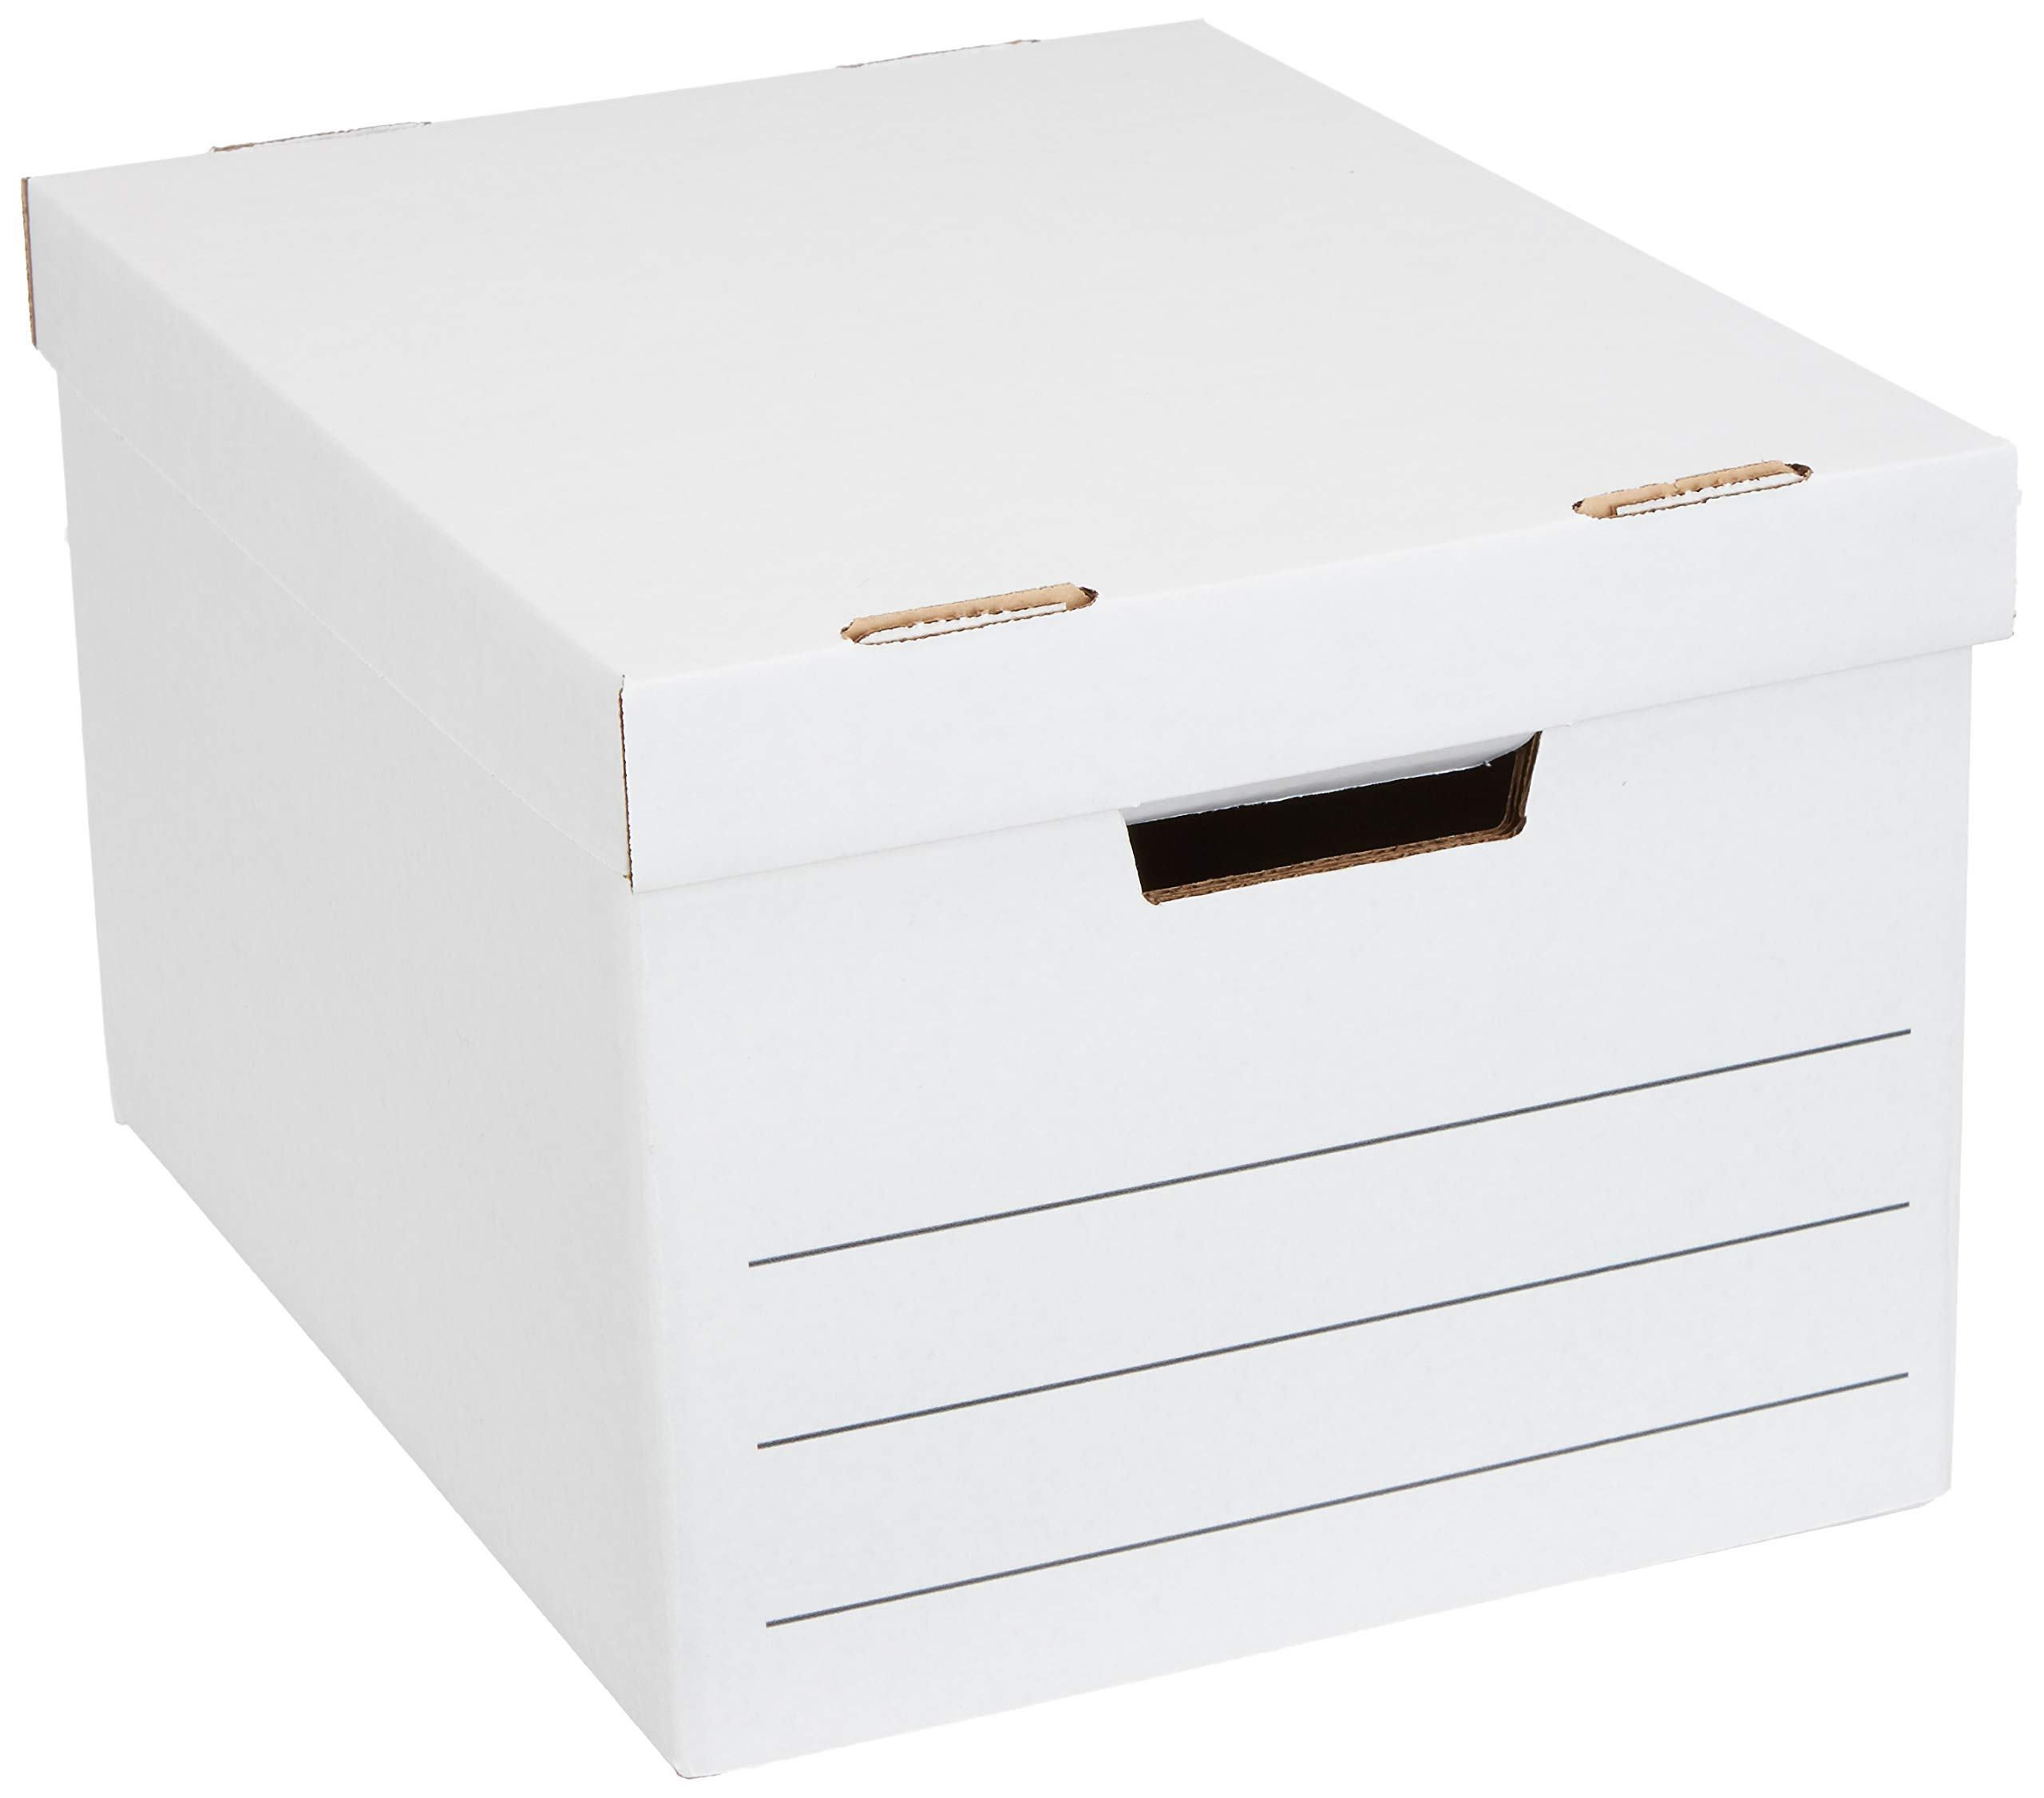 AmazonBasics Heavy Duty Storage Filing Box with Lift-Off Lid - Pack of 12, Letter / Legal Size by AmazonBasics